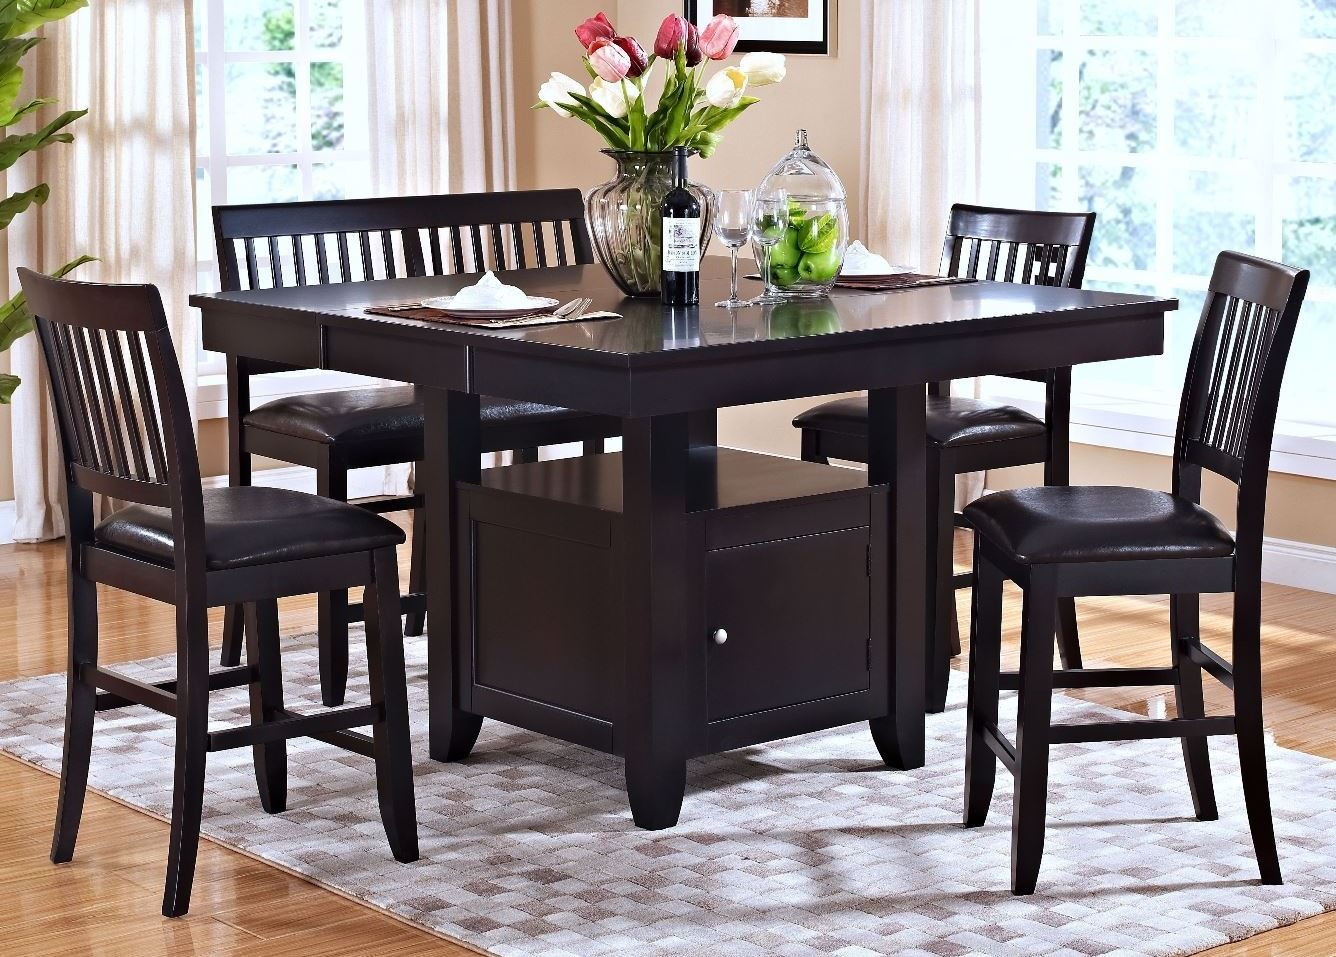 Countertop Dining Room Sets kaylee espresso counter height storage dining room set from new